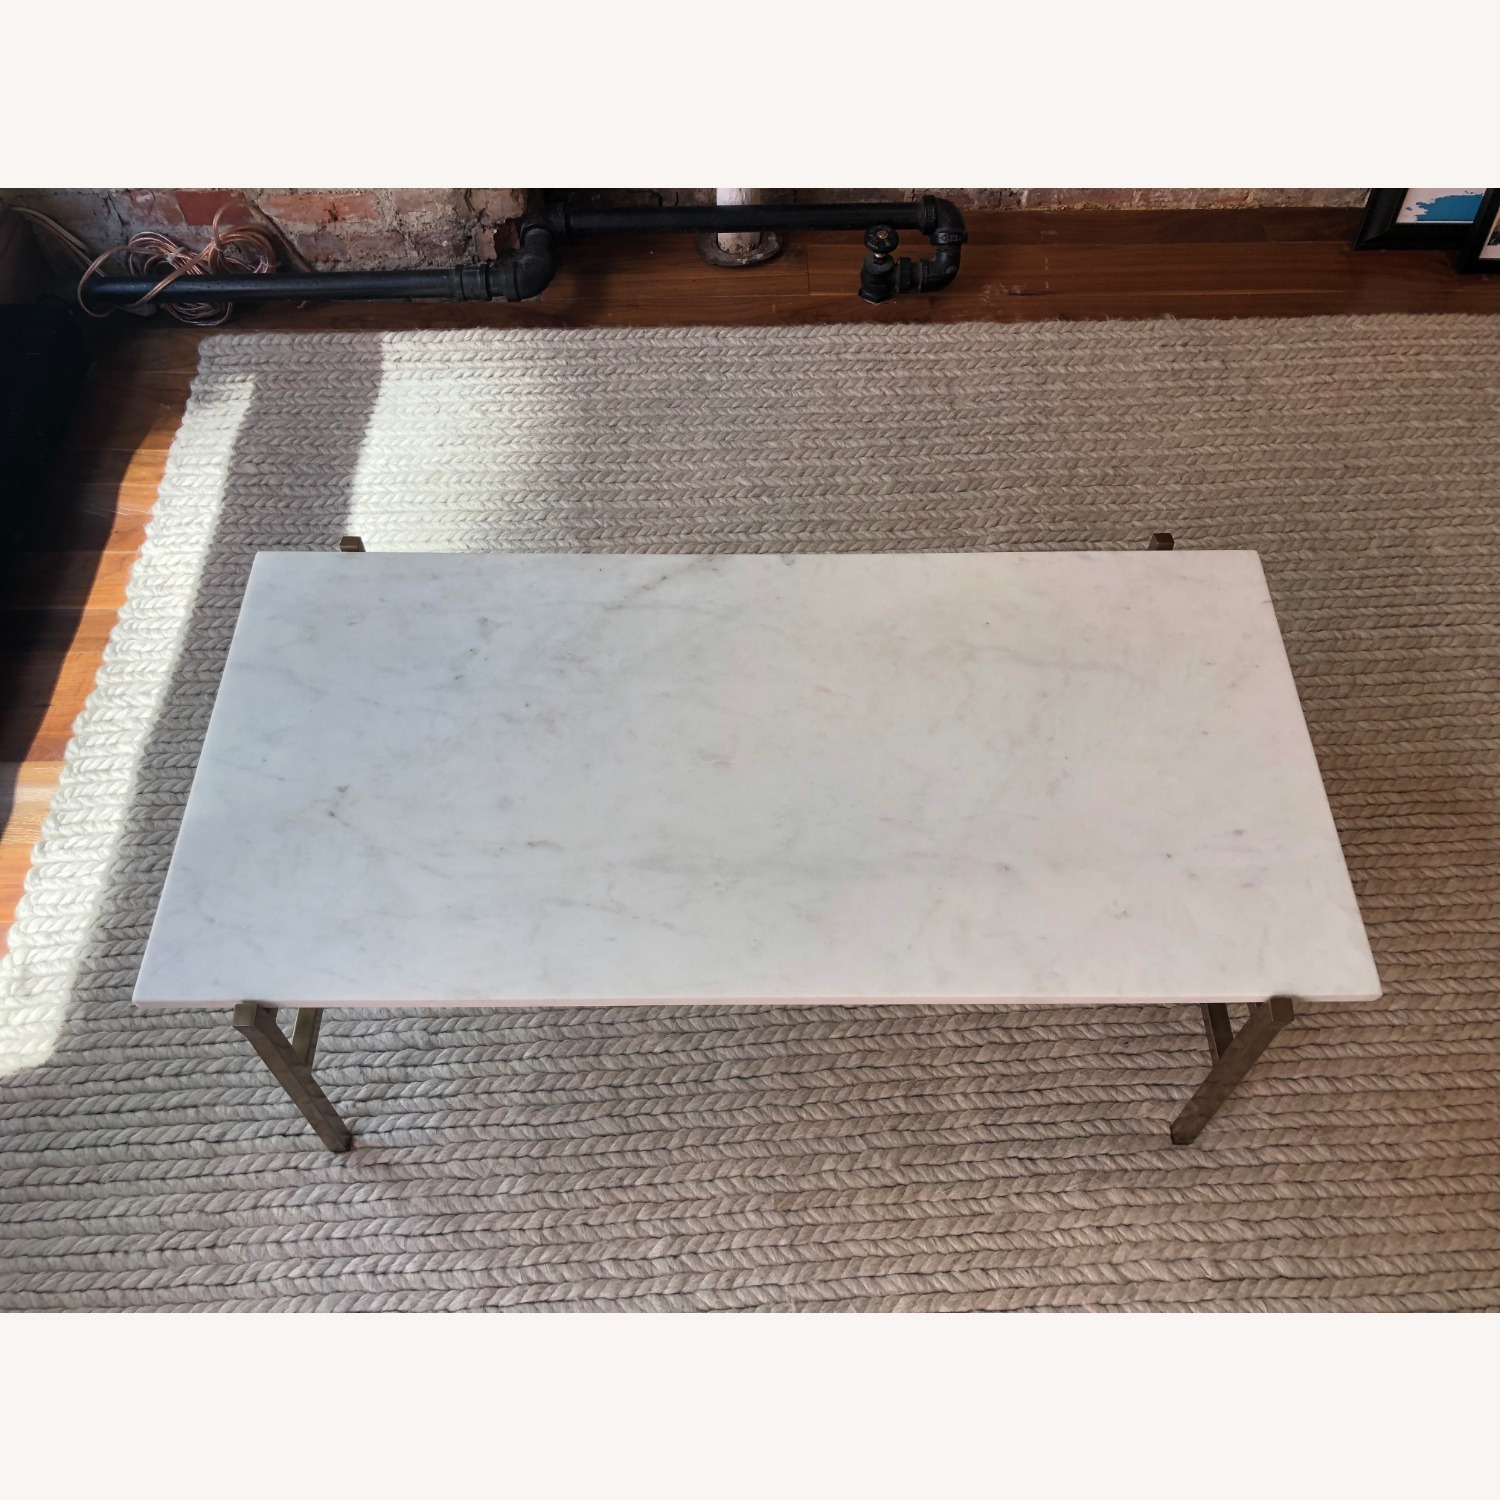 CB2 Marble Coffee Table with Brass Base - image-4